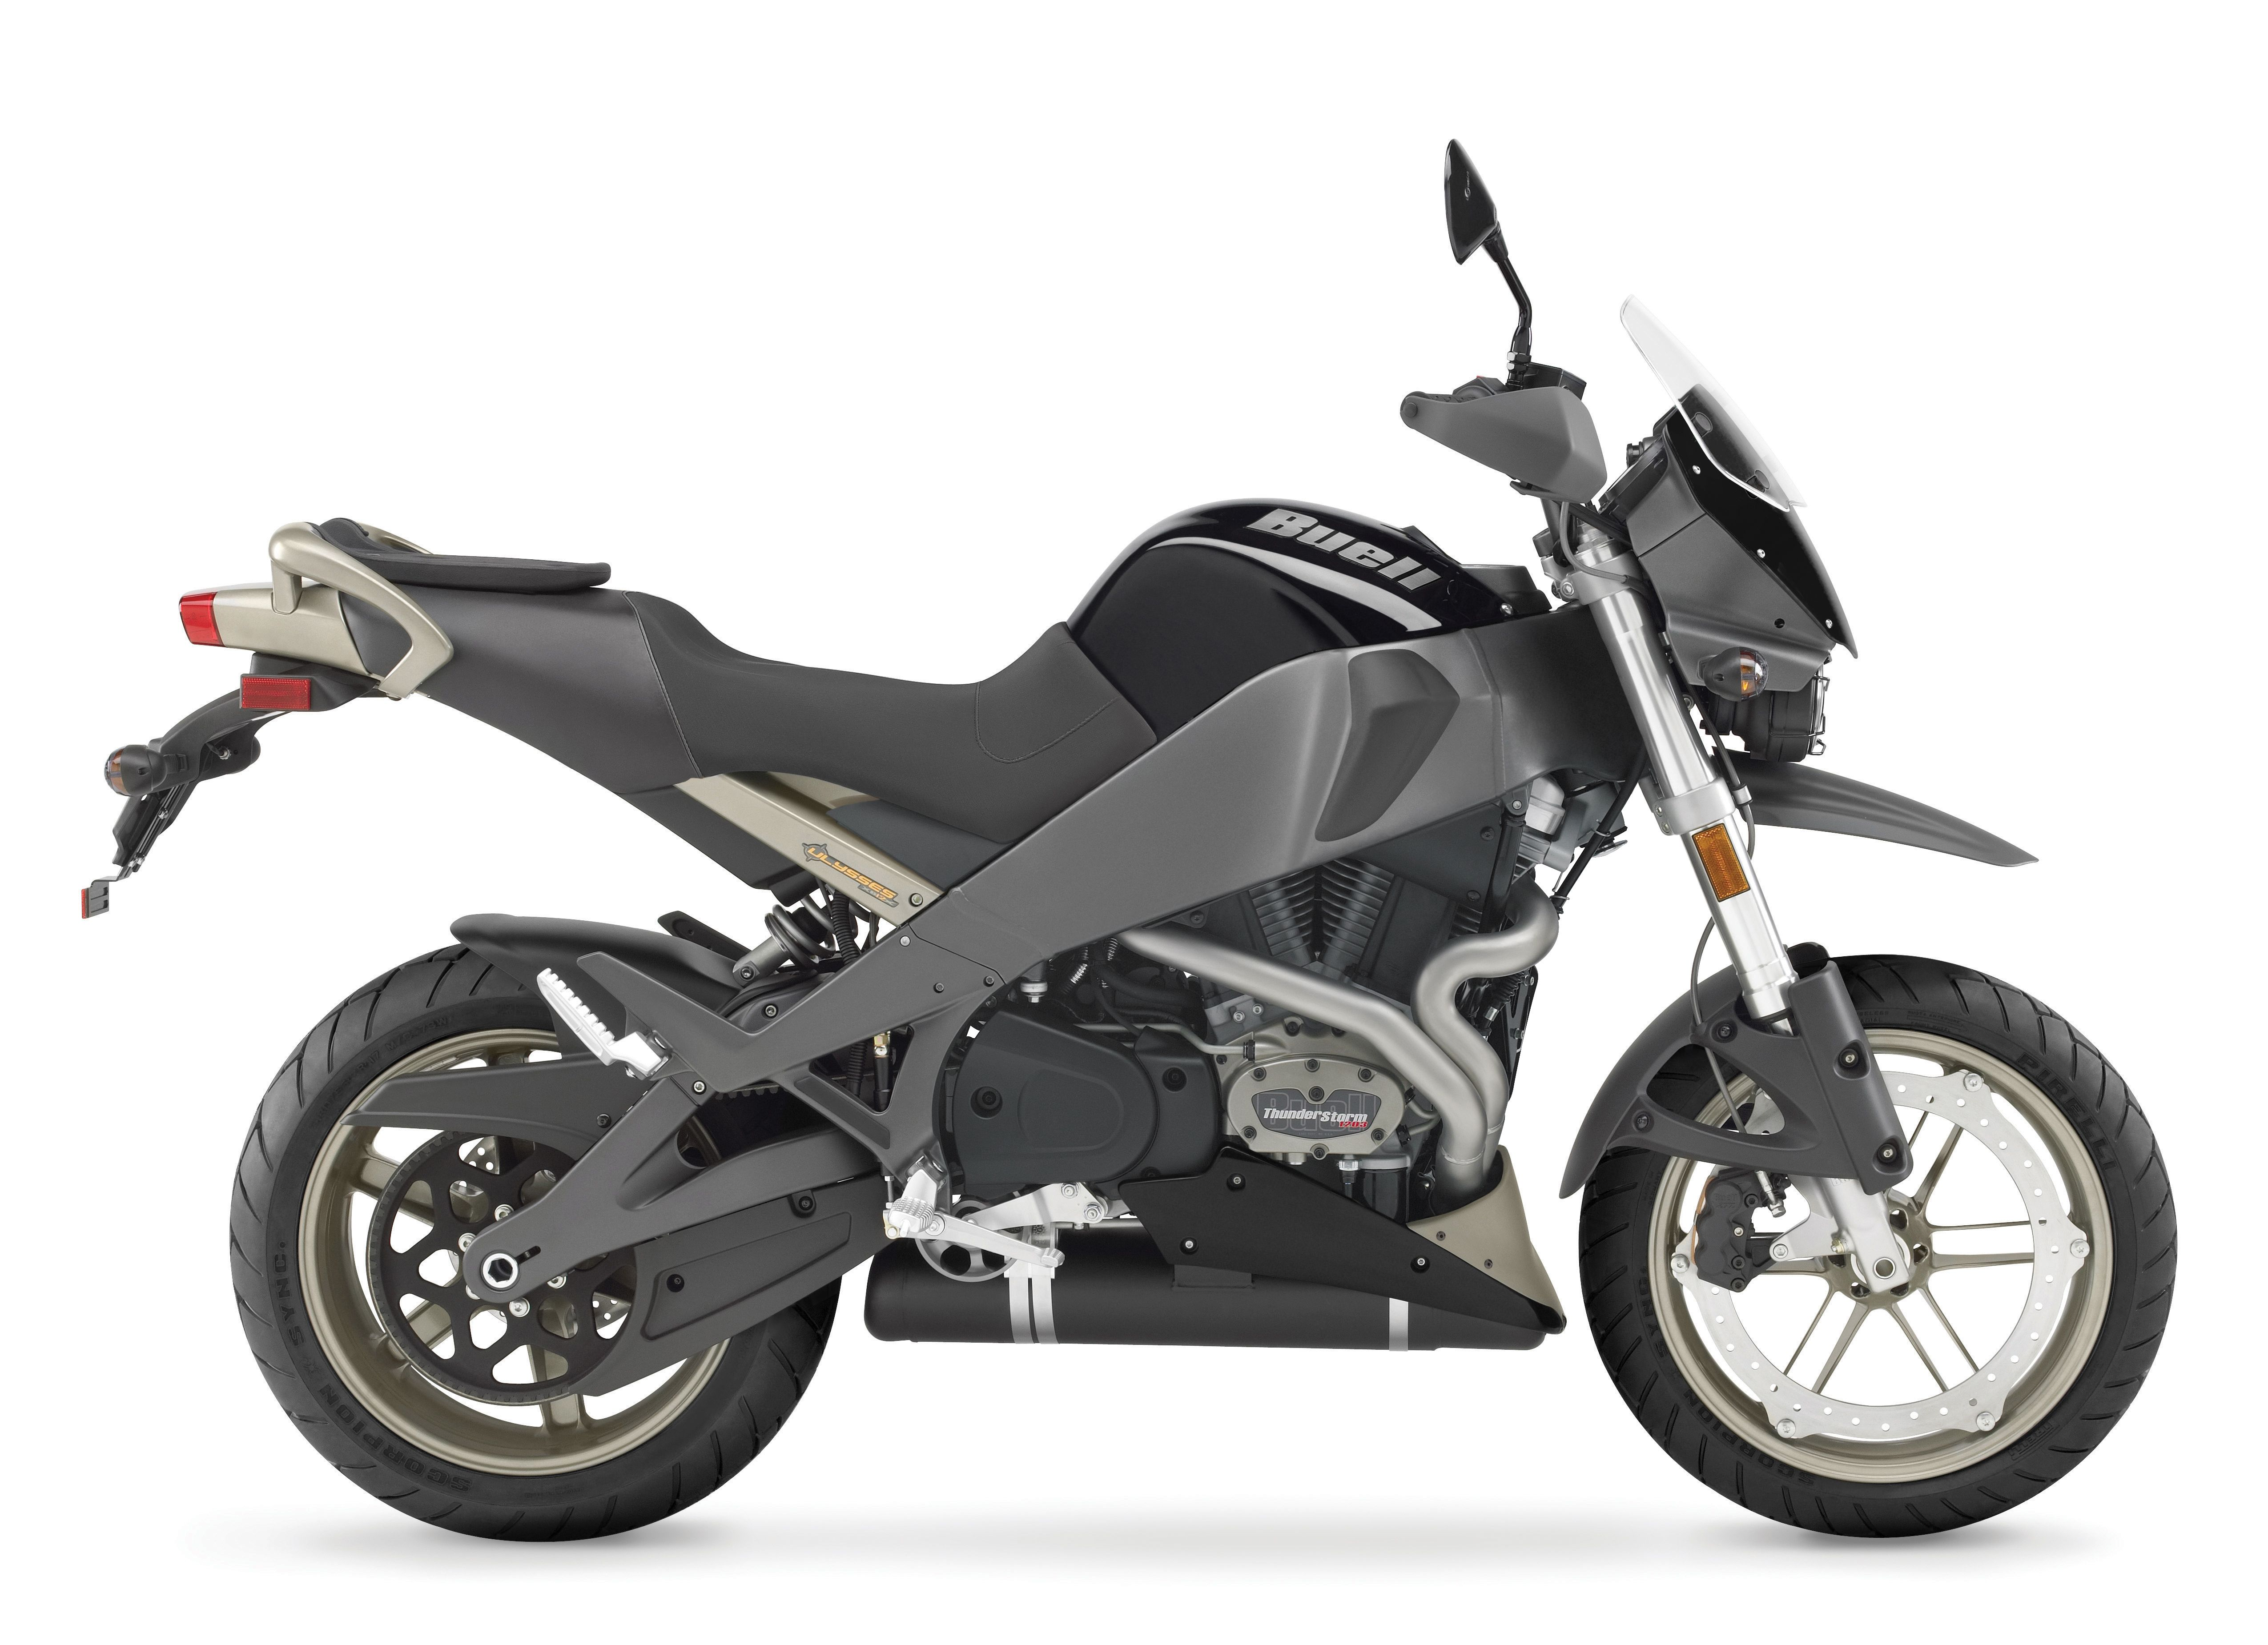 Ulysses Buell Buell Ulysses Problems Buell Ulysses Xb12x Buell Ulysses Xb12x For Sale Buell Uly Motorcycle Types Different Types Of Motorcycles Motorcycle